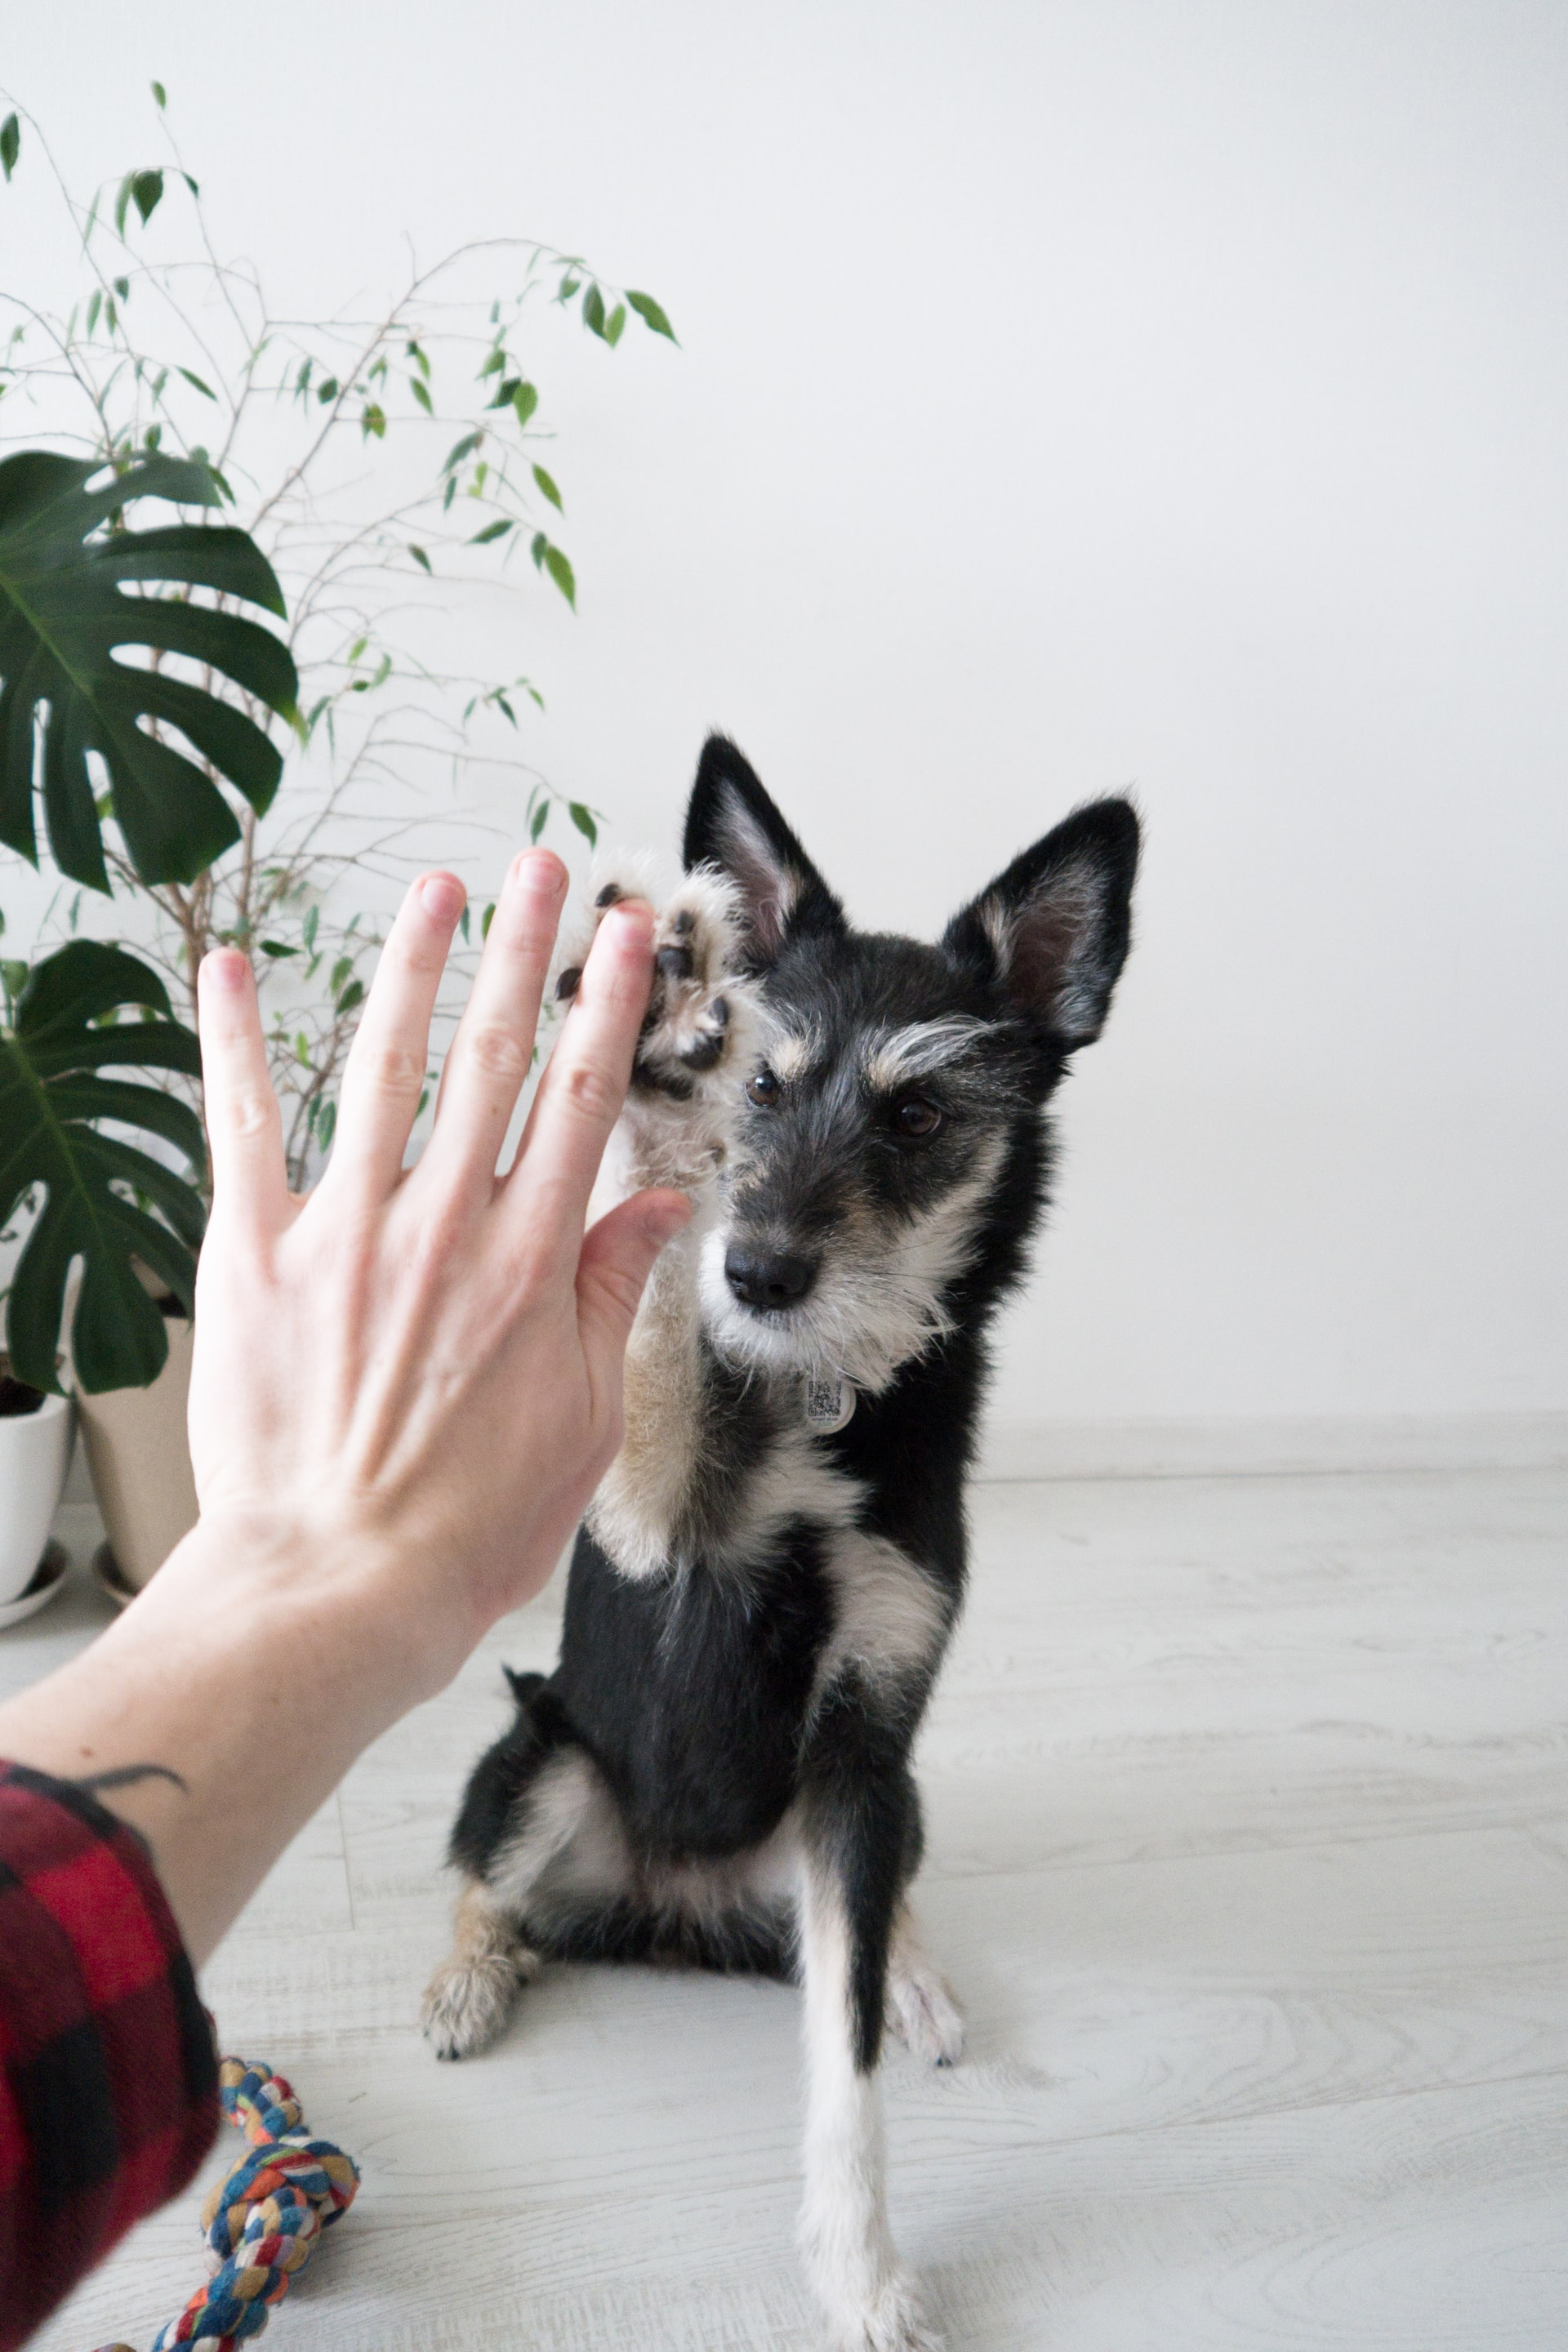 High five with dog